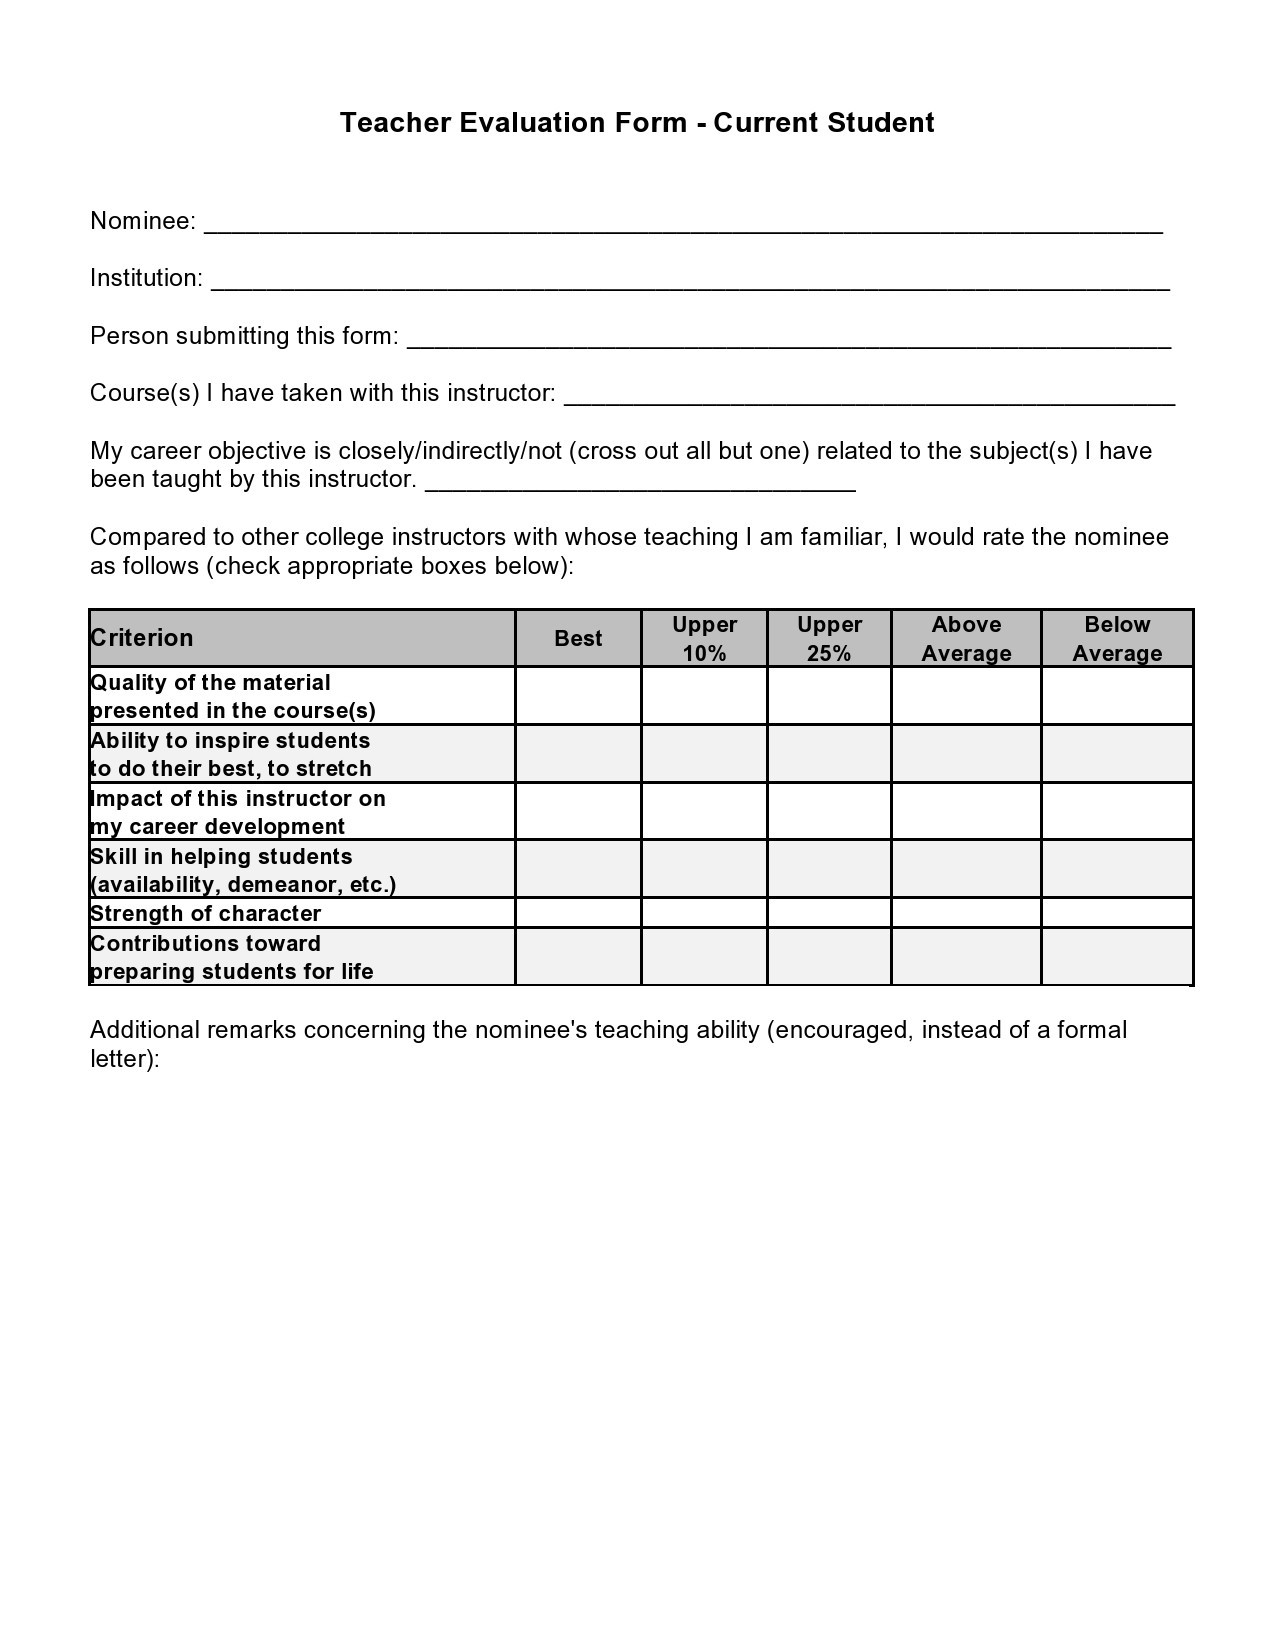 Free teacher evaluation form 39